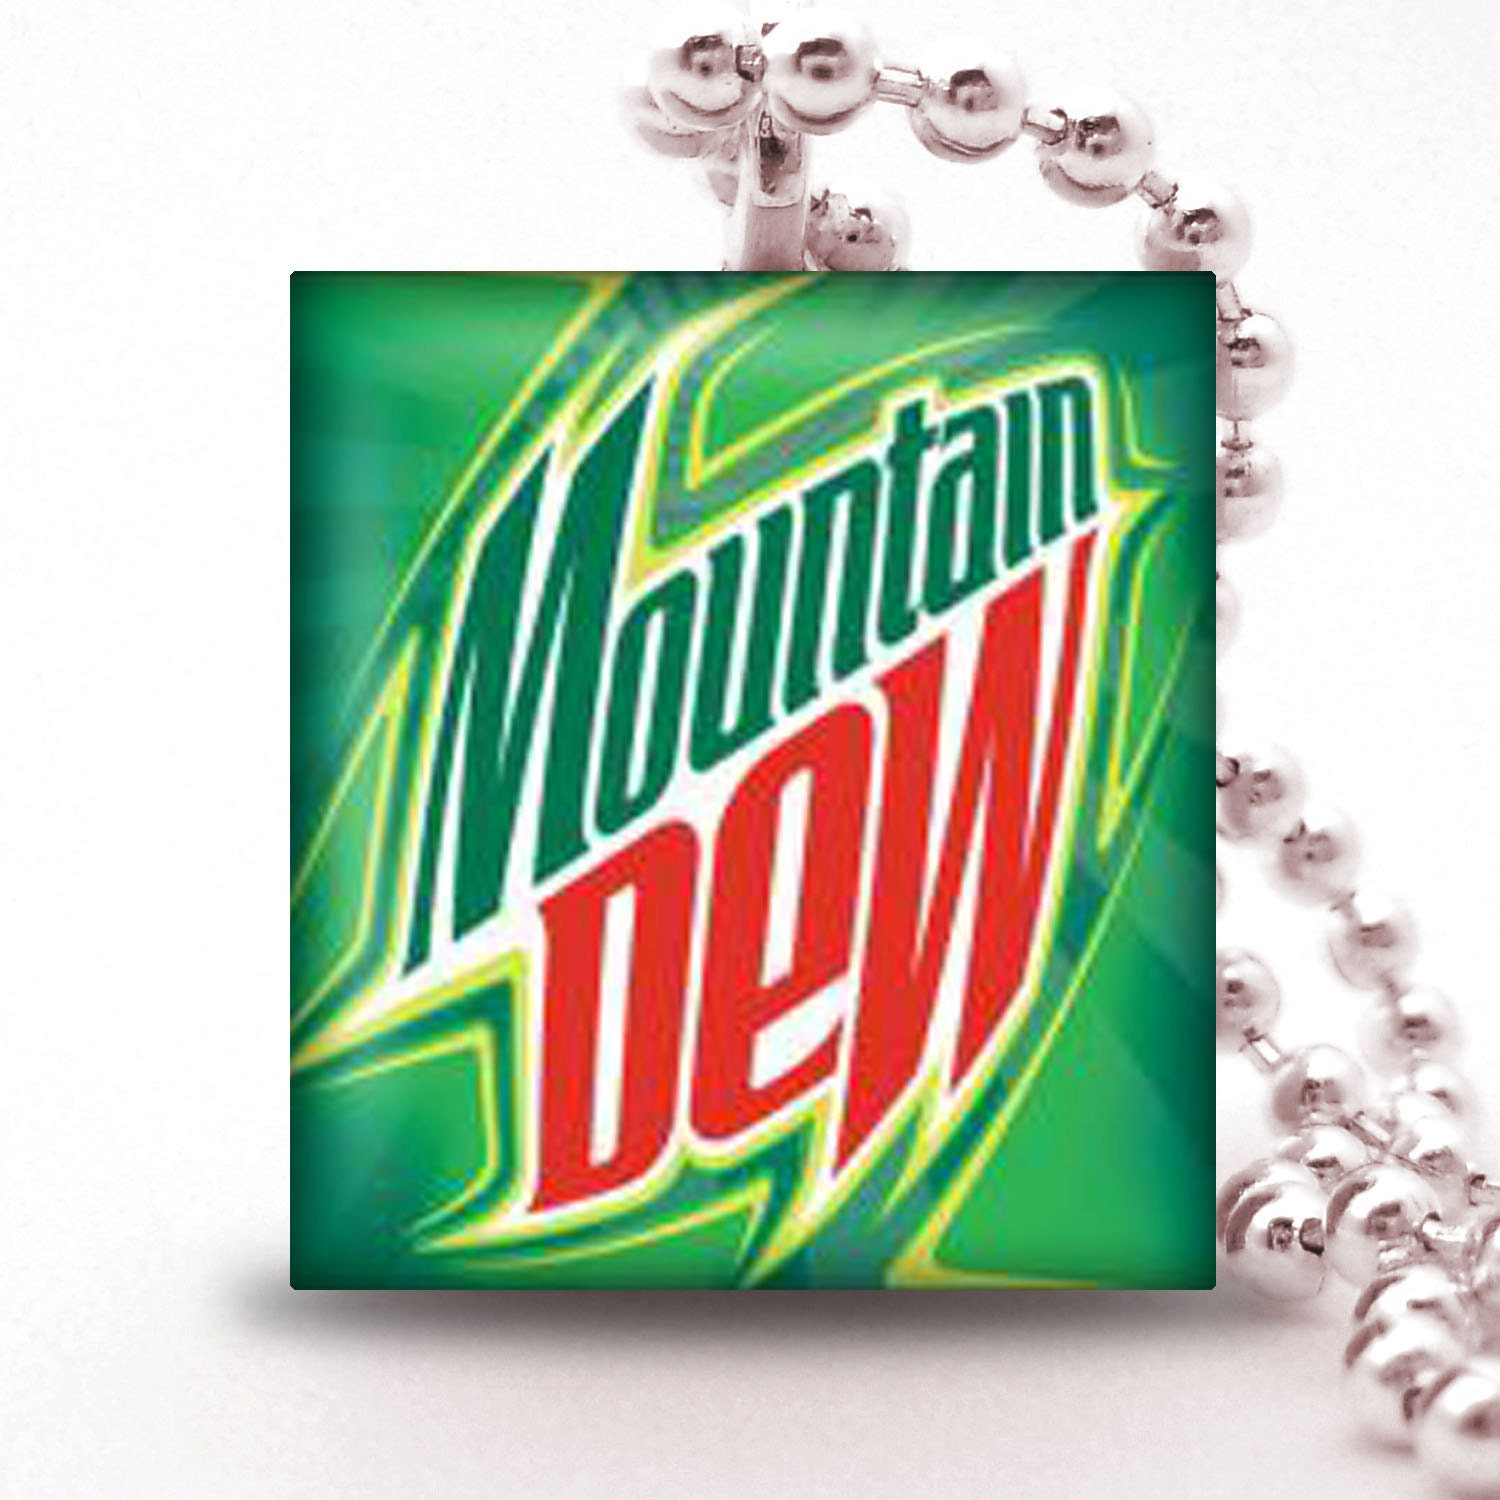 MOUNTAIN DEW - Scrabble Tile Pendant- SoDA PoP CoLLECTION- Buy 2 Pendants Get 1 Free